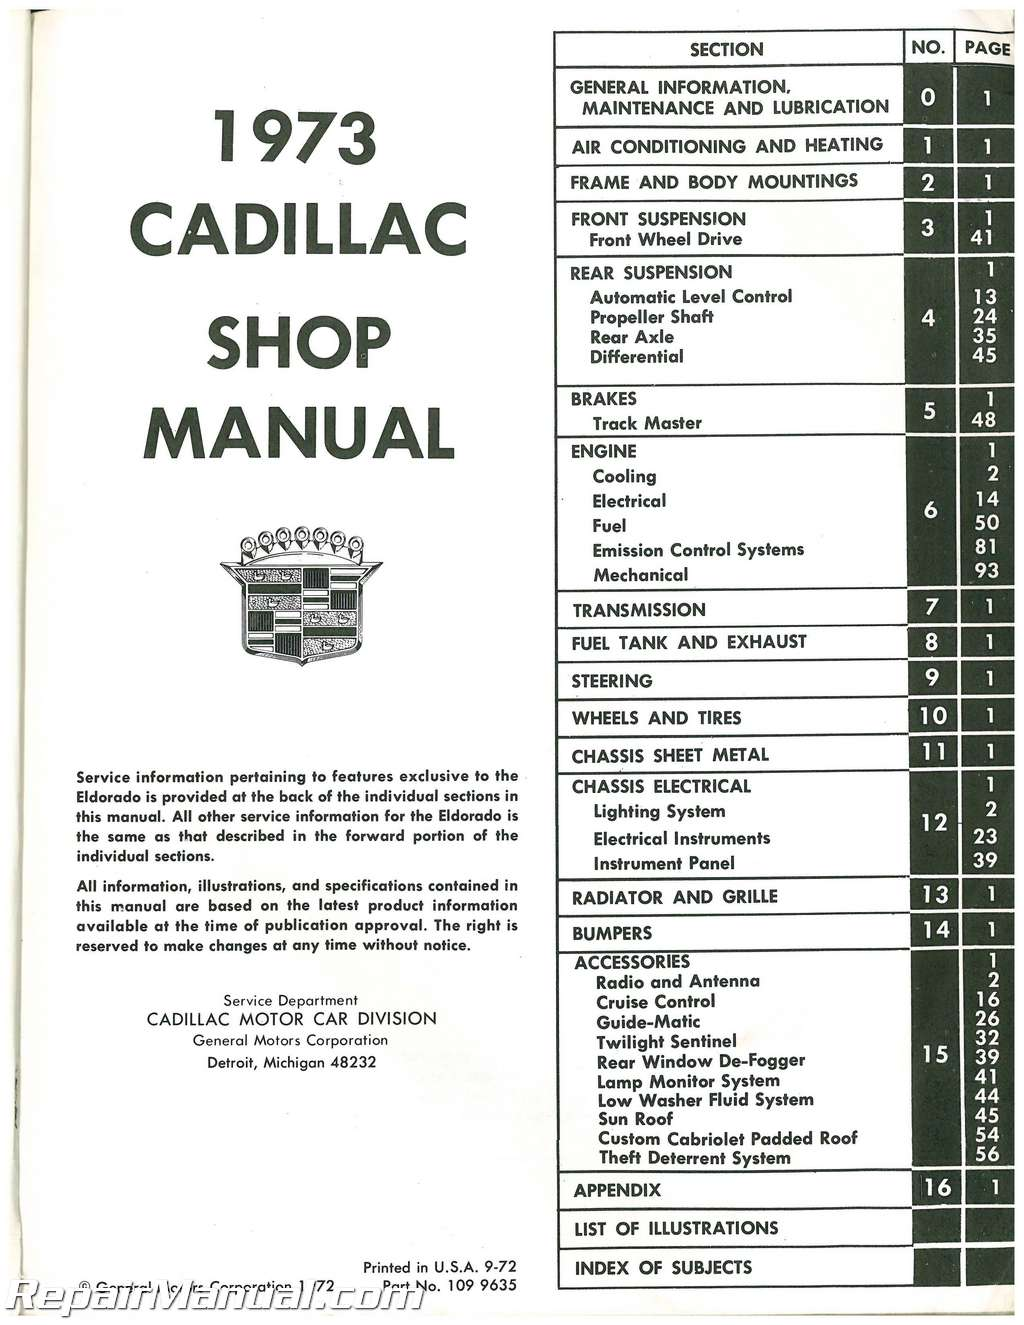 Used 1973 Cadillac Automobile Service Manual